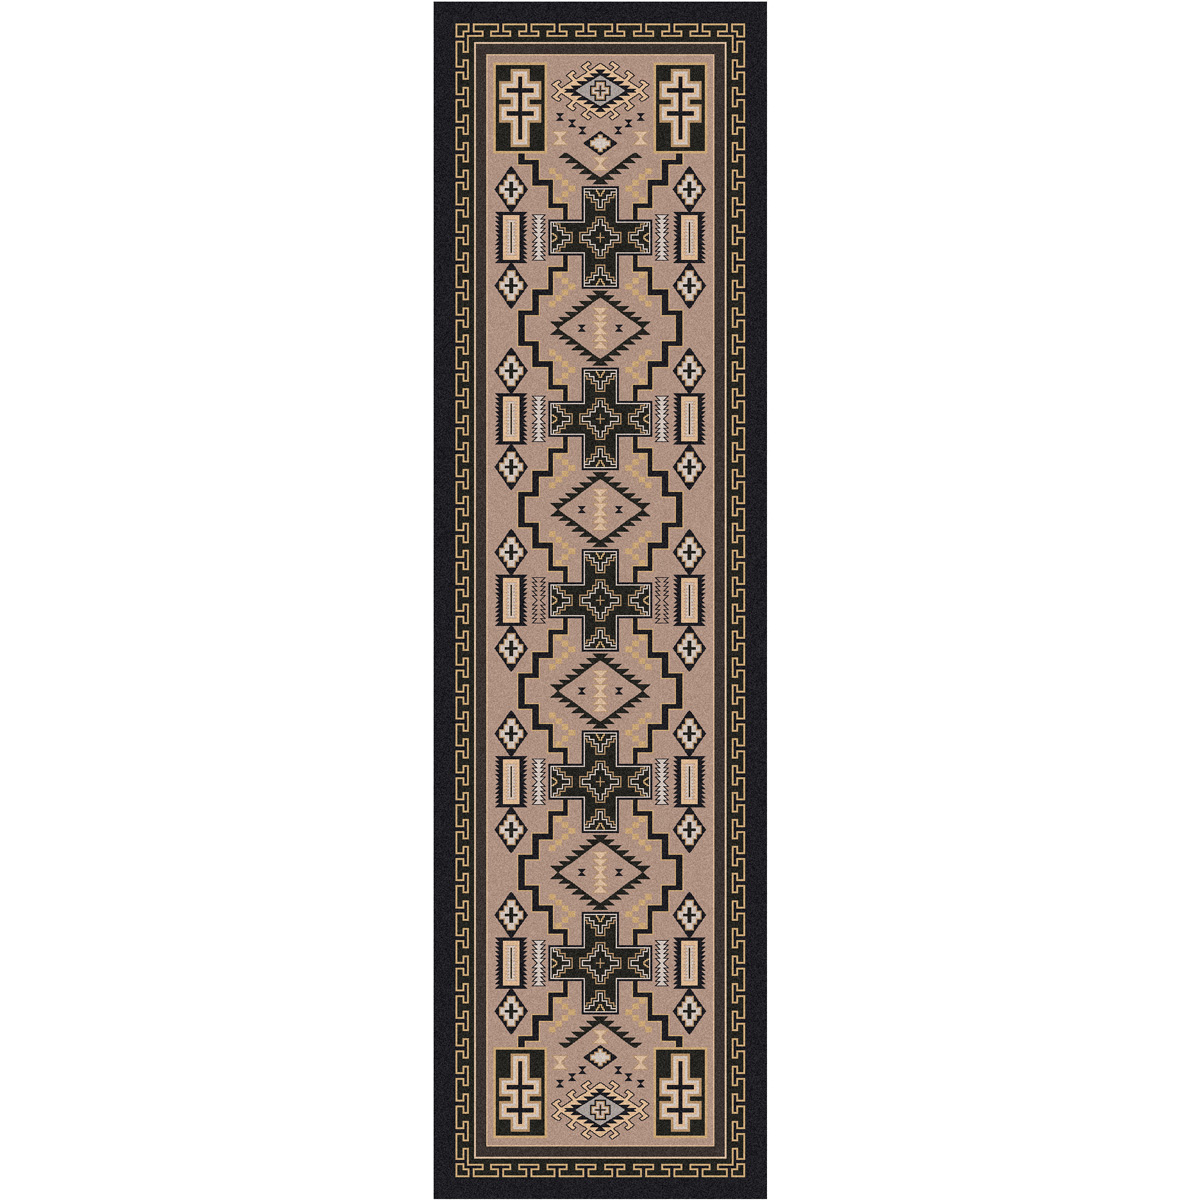 Double Cross Sandman Rug - 2 x 8